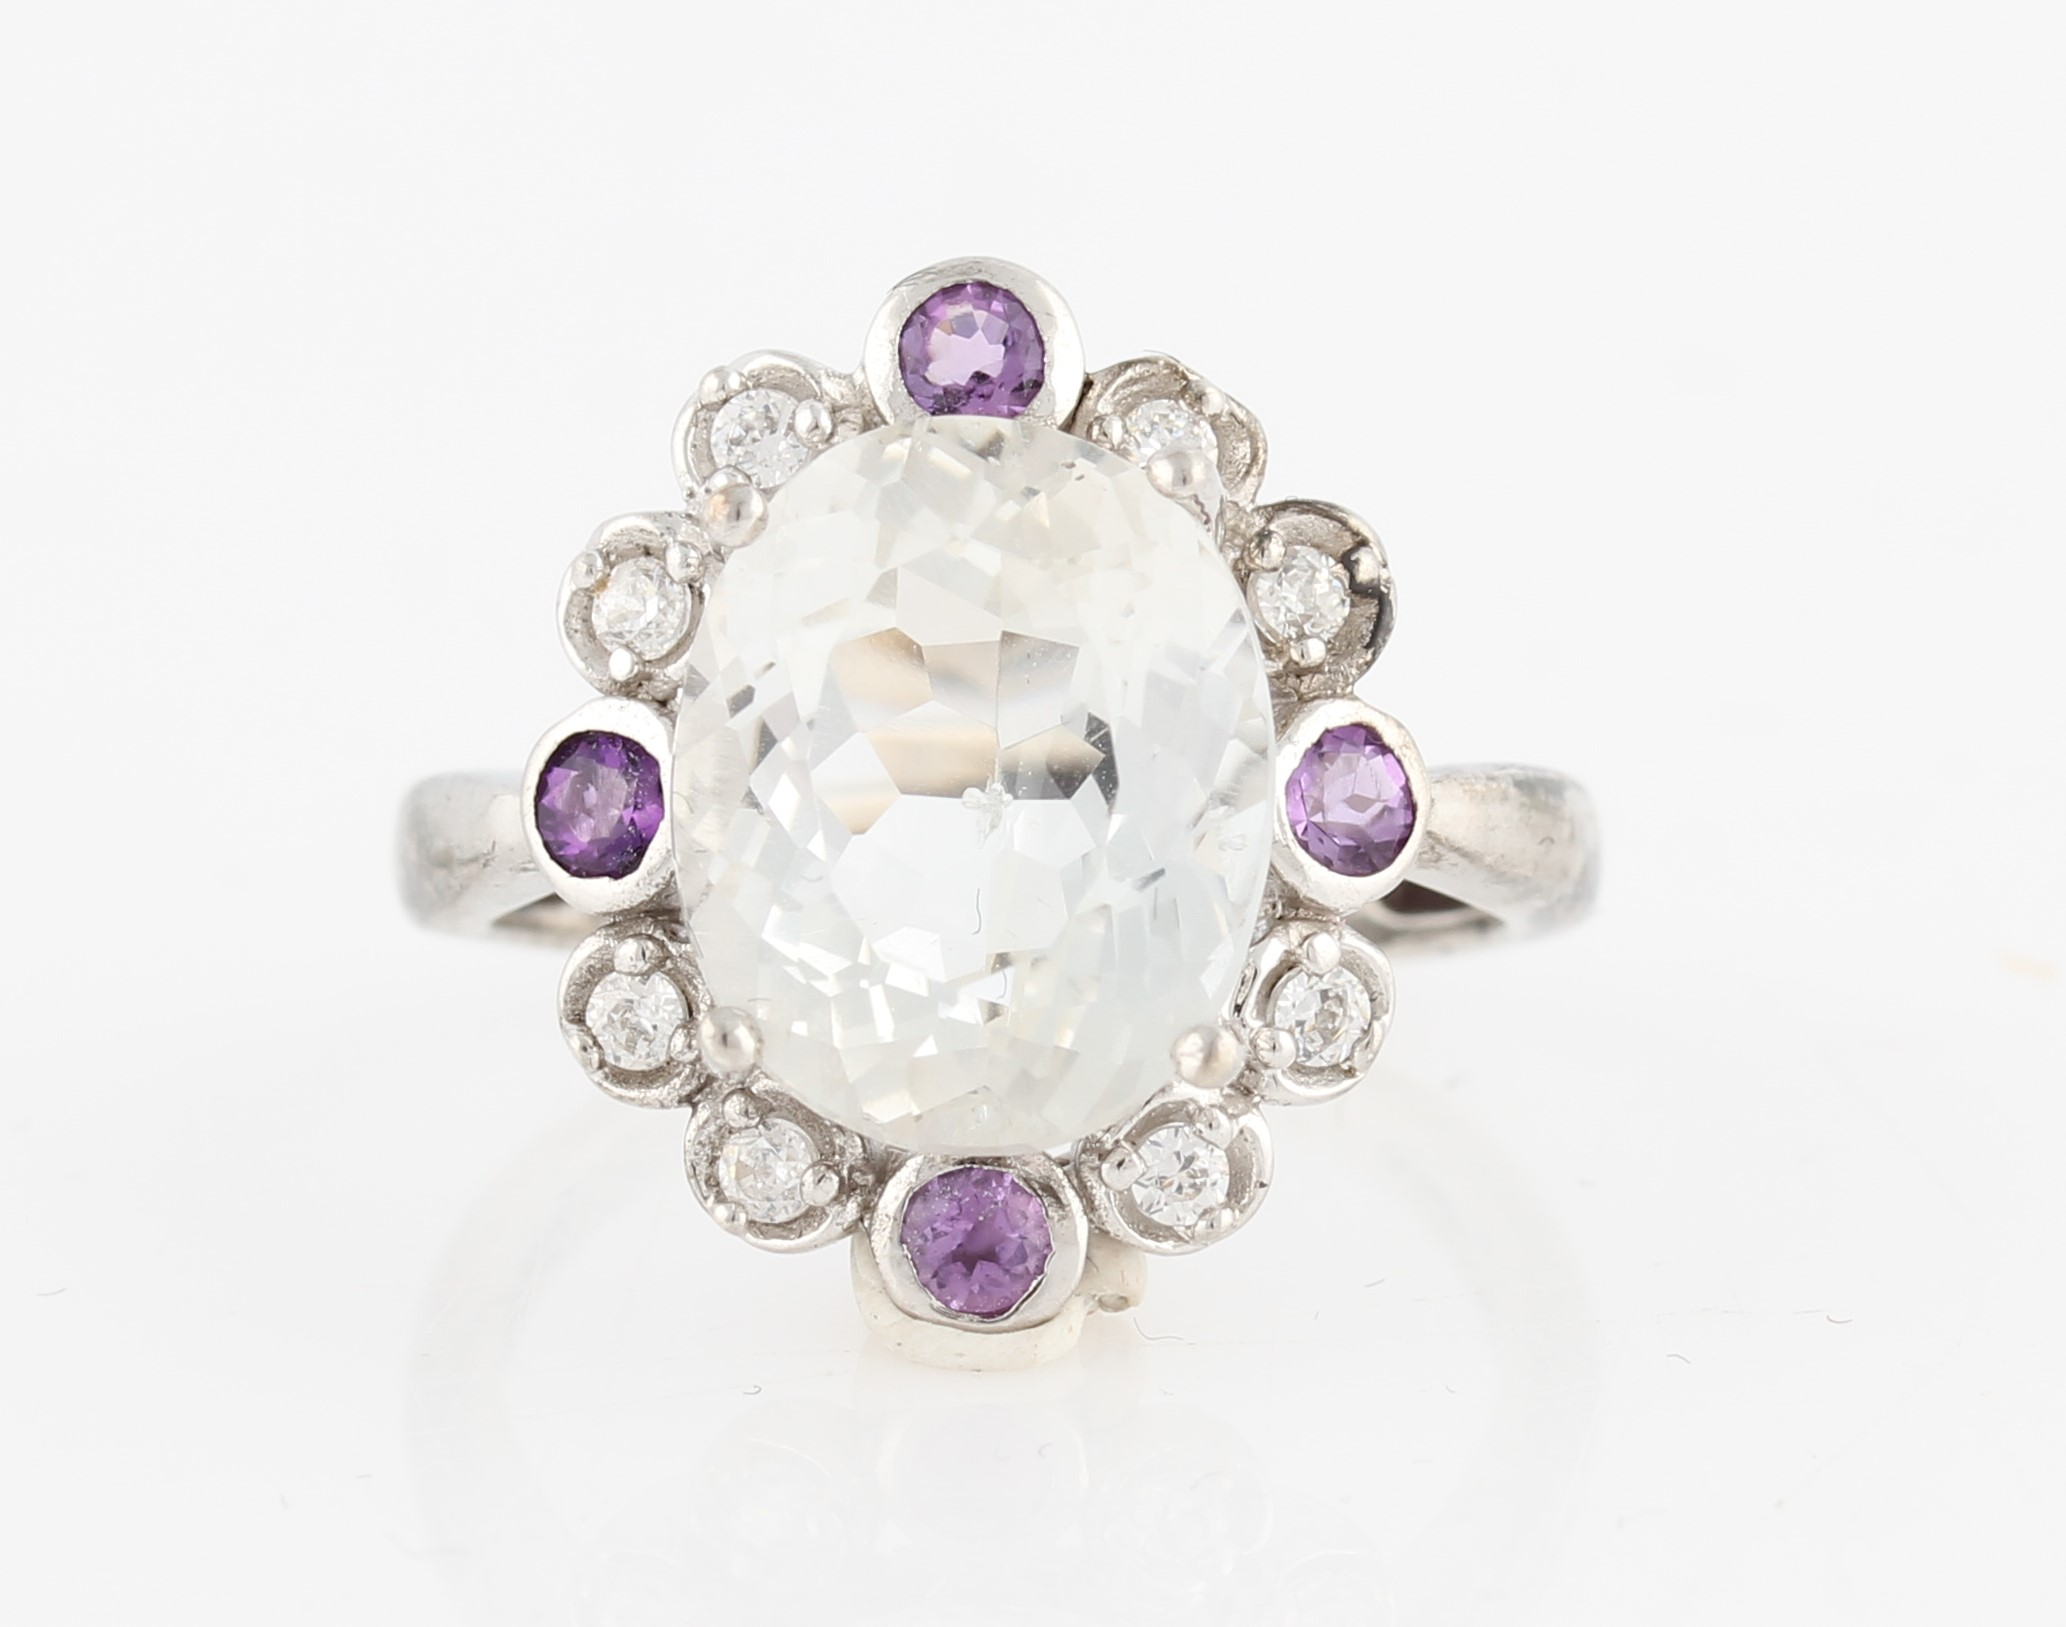 Lot 54 - A topaz and amethyst dress ring, set with a central oval cut colourless topaz surrounded by a border